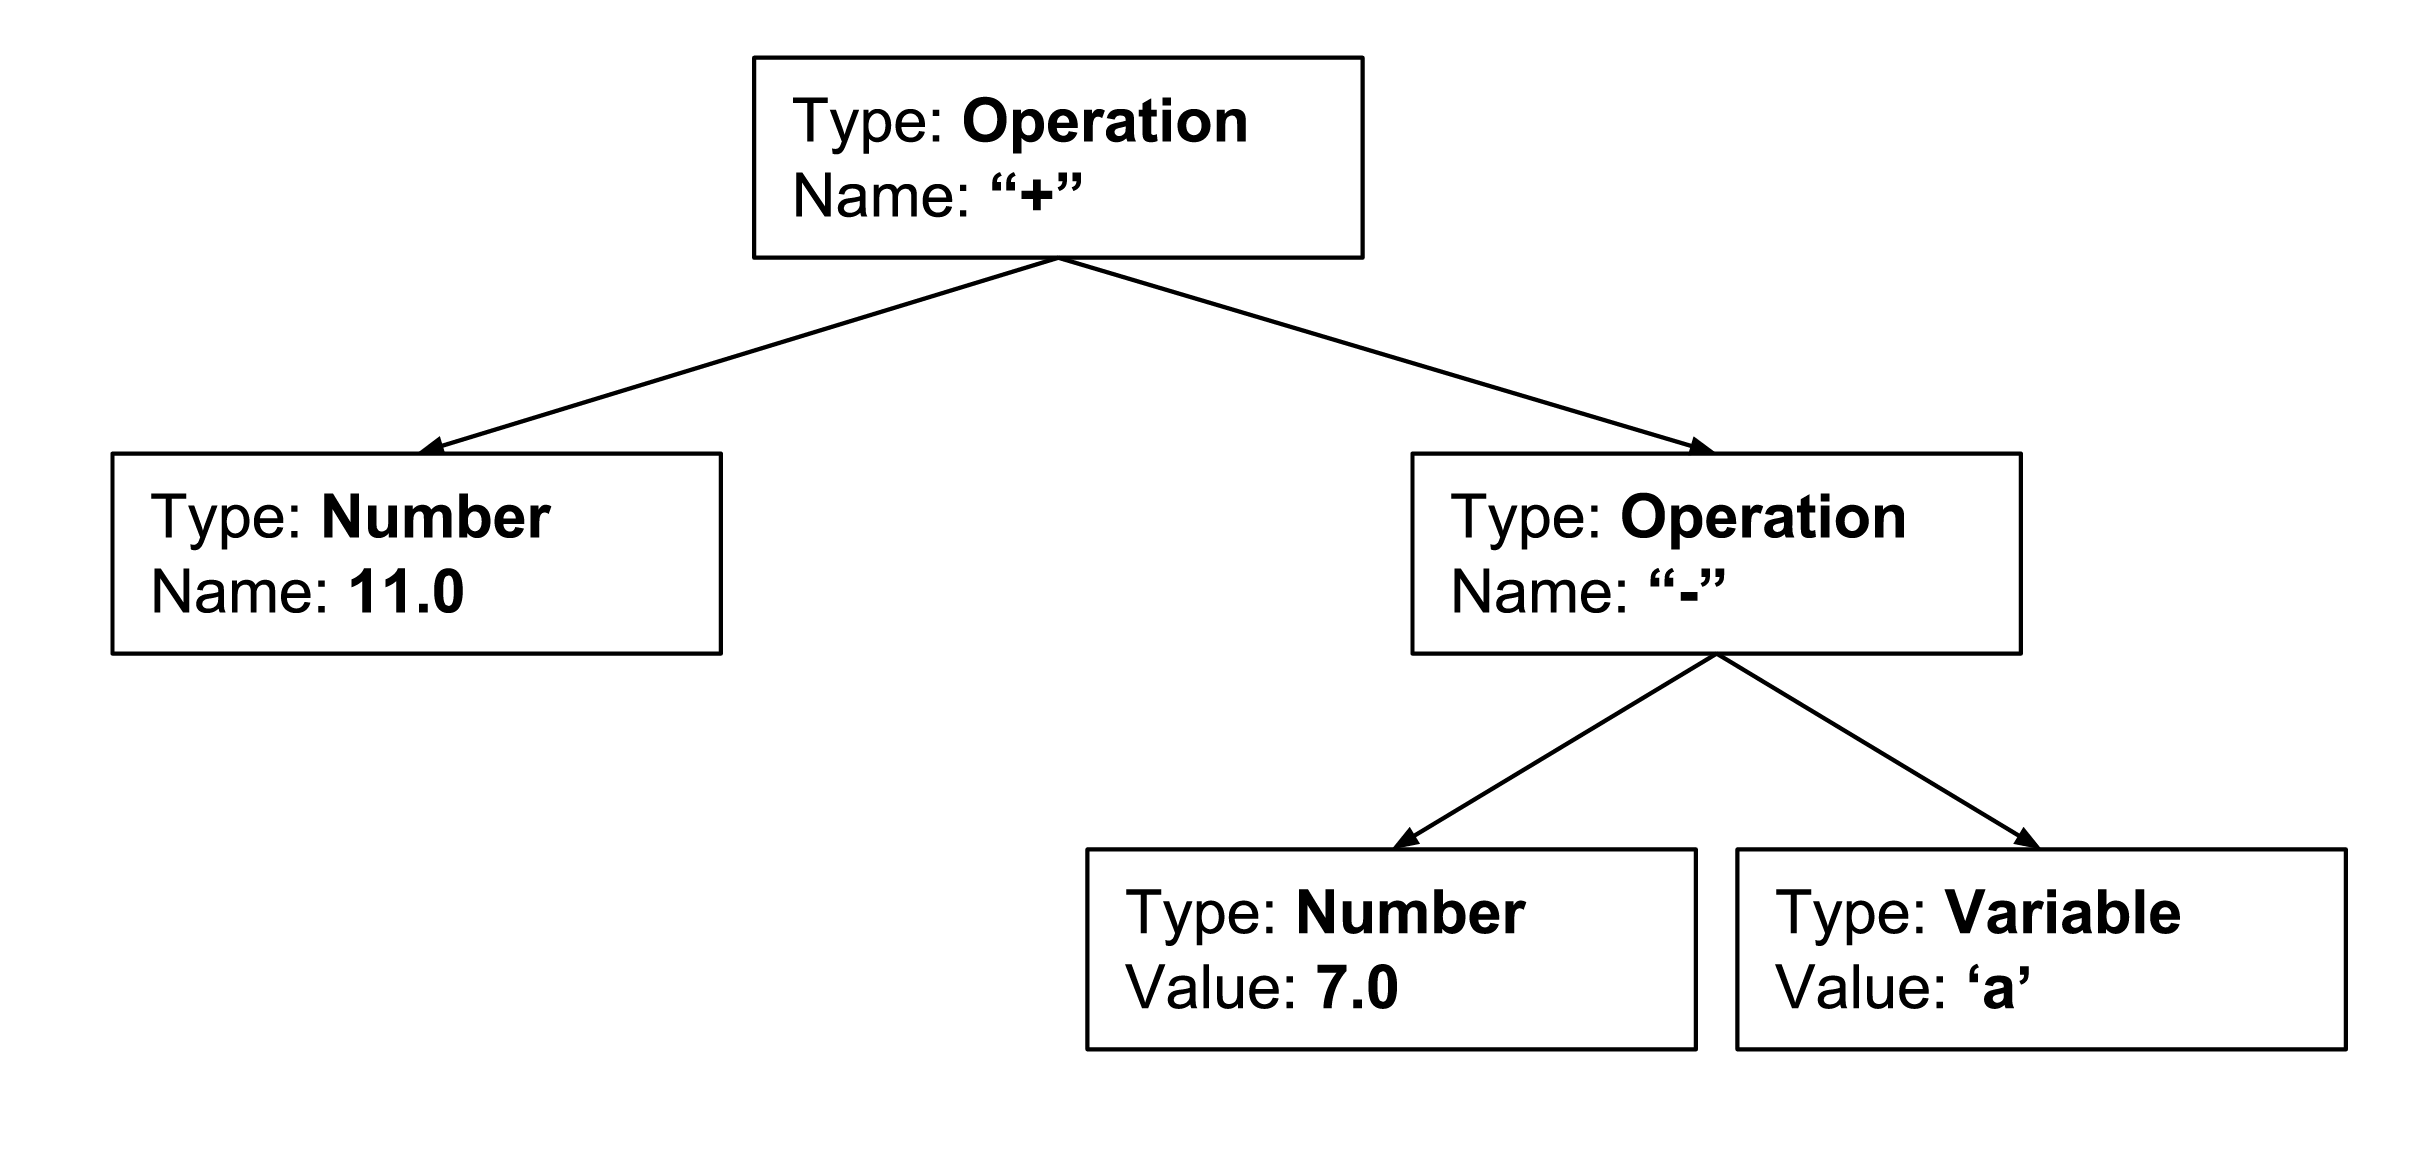 AST representation of simplify(11 + (7 - a))